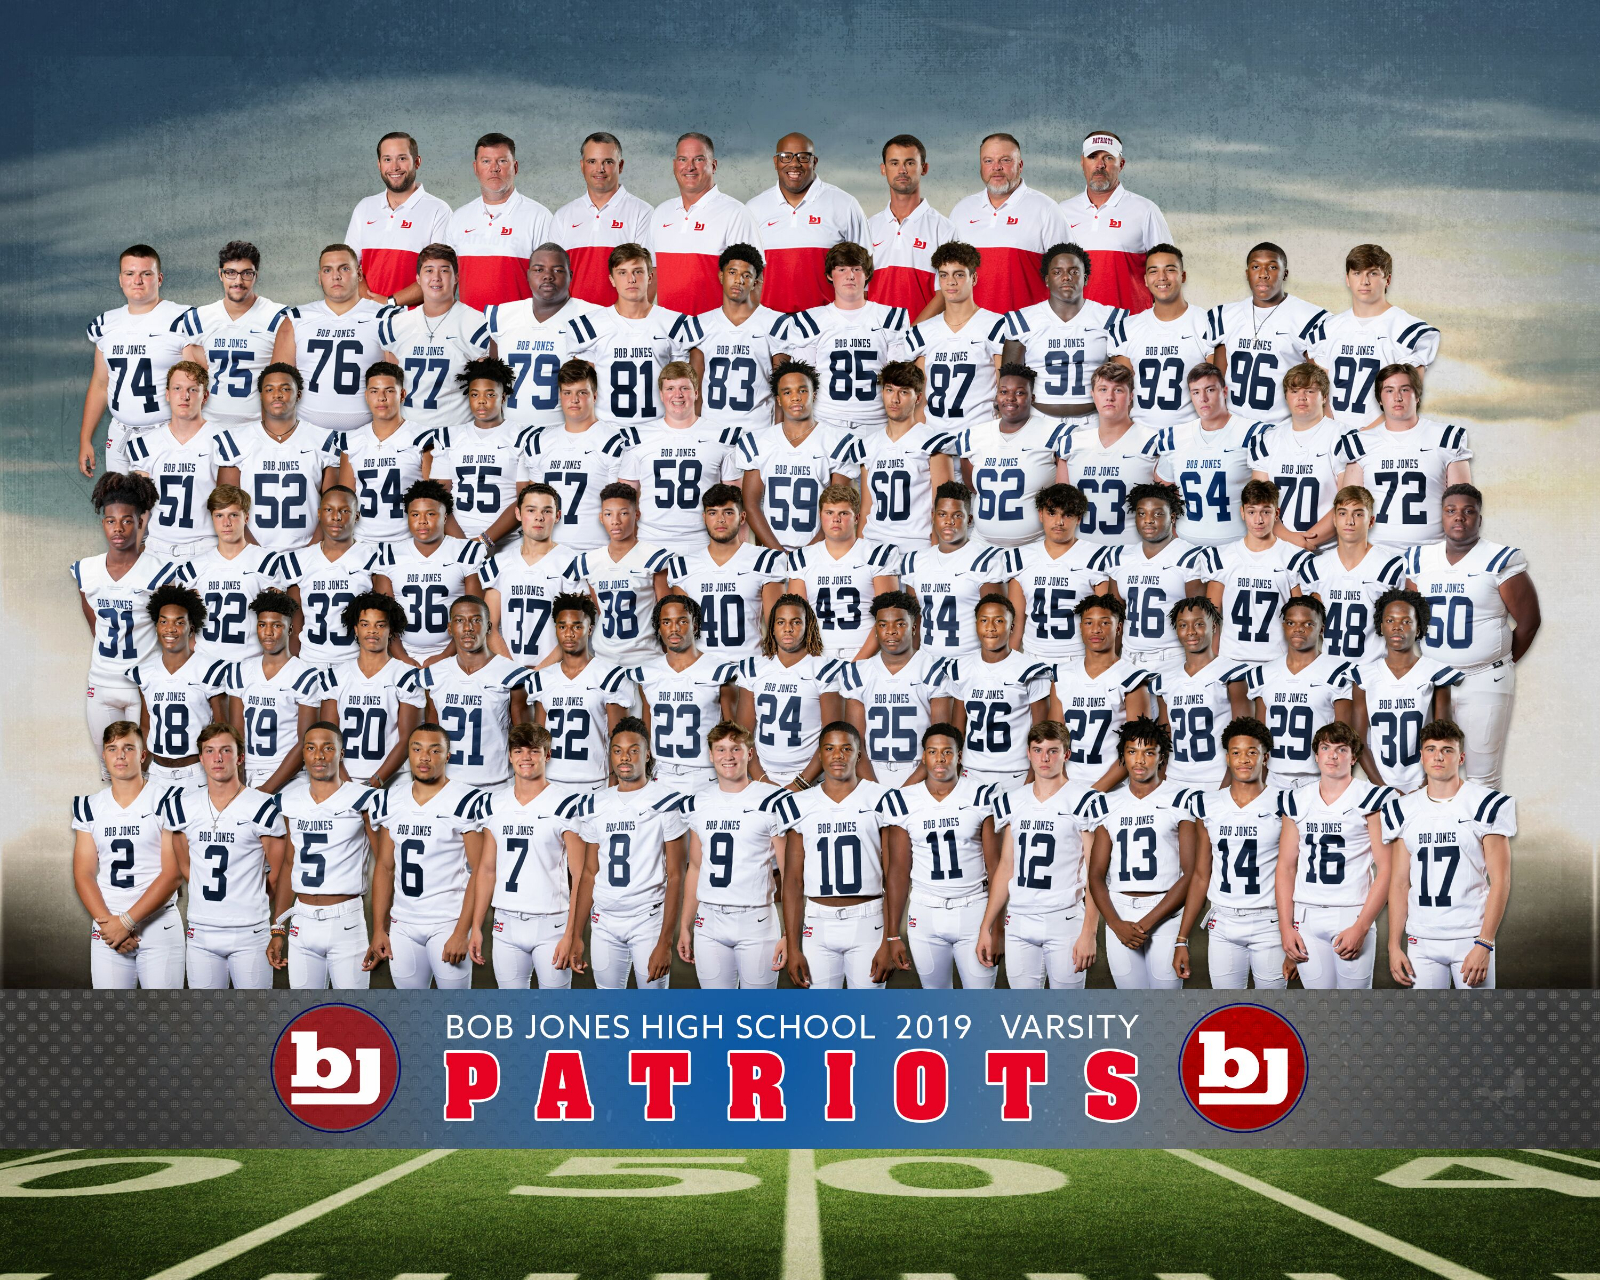 First Football Game TONIGHT at 7:00 PM!